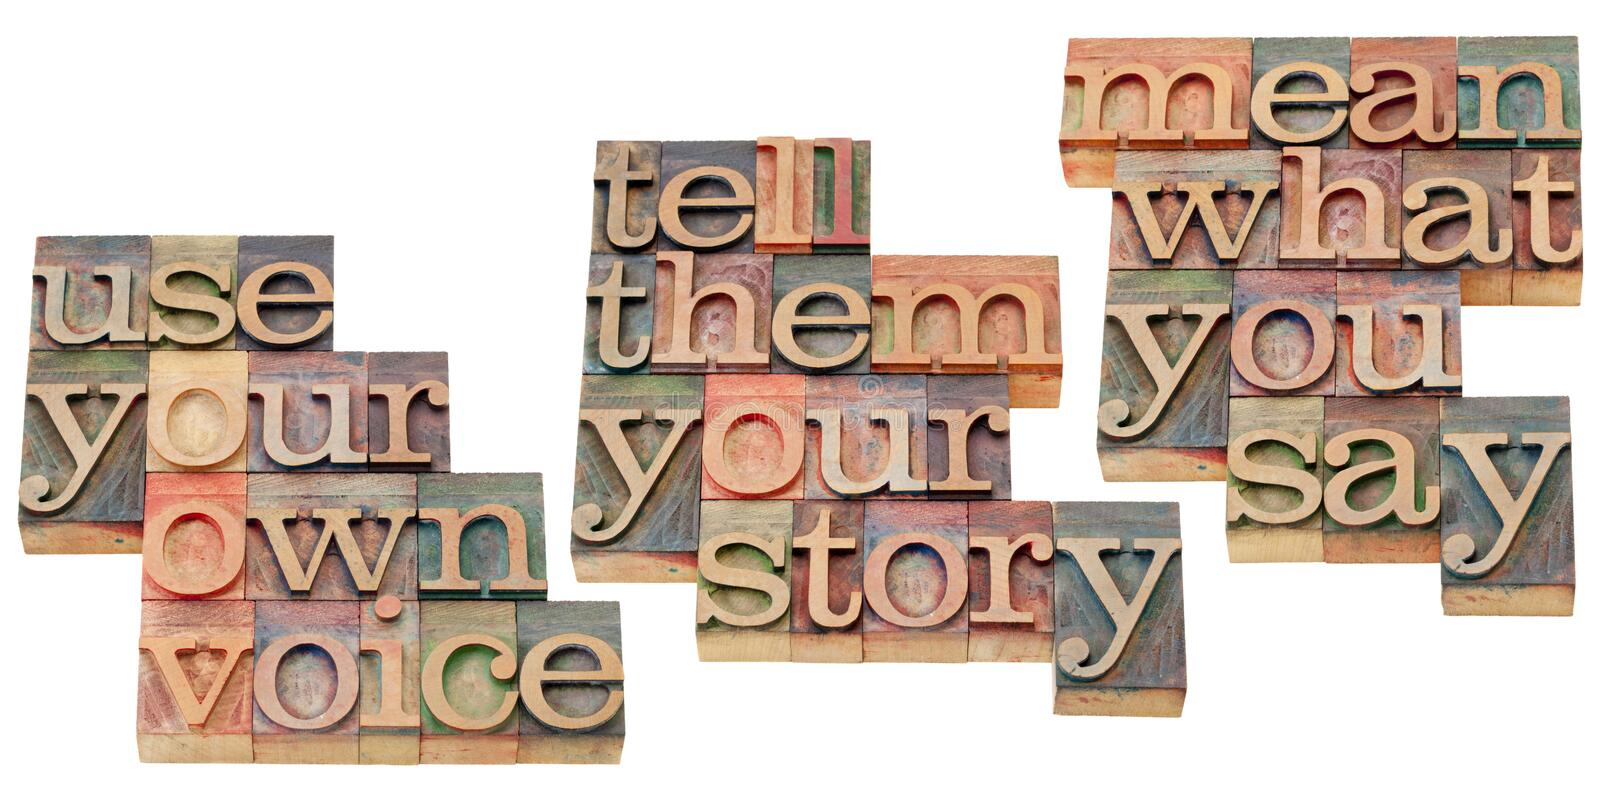 Advice for personal message. Use your own voice, tell them your story, mean what you say - isolated text in vintage wood letterpress printing blocks